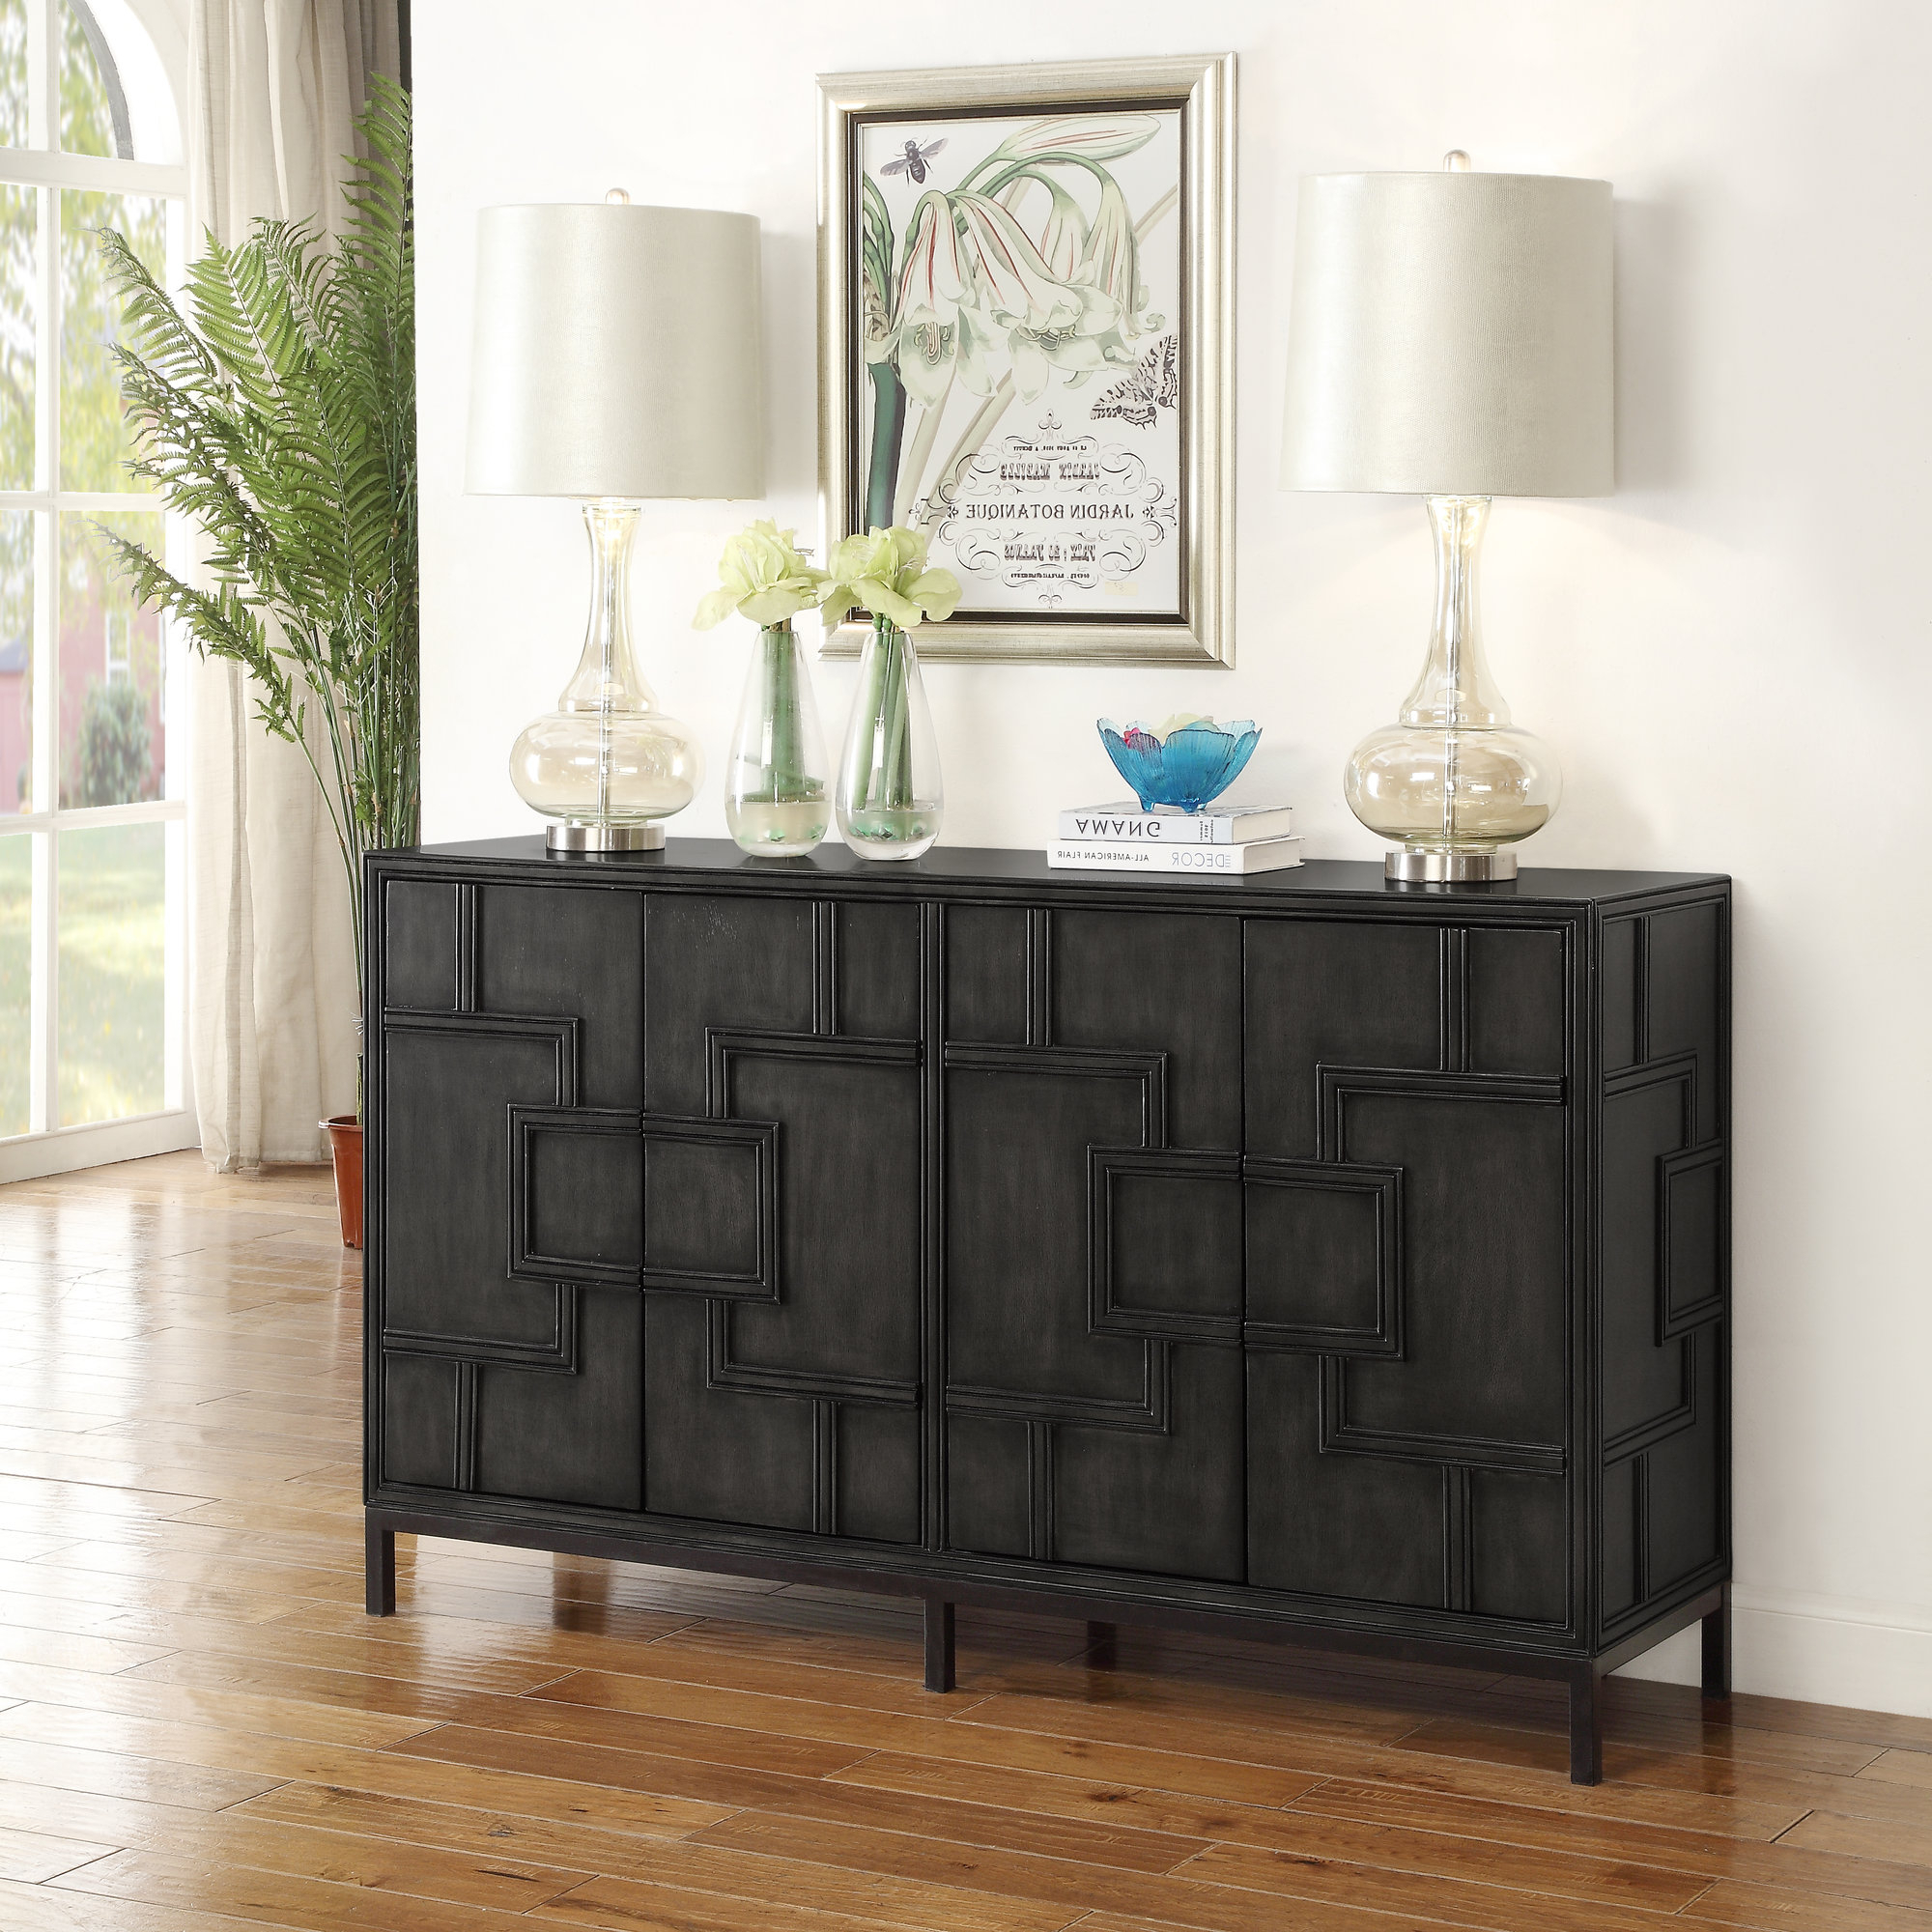 Widely Used Candide Wood Credenzas With Regard To Details About Bloomsbury Market Candide Wood Credenza (Gallery 1 of 20)